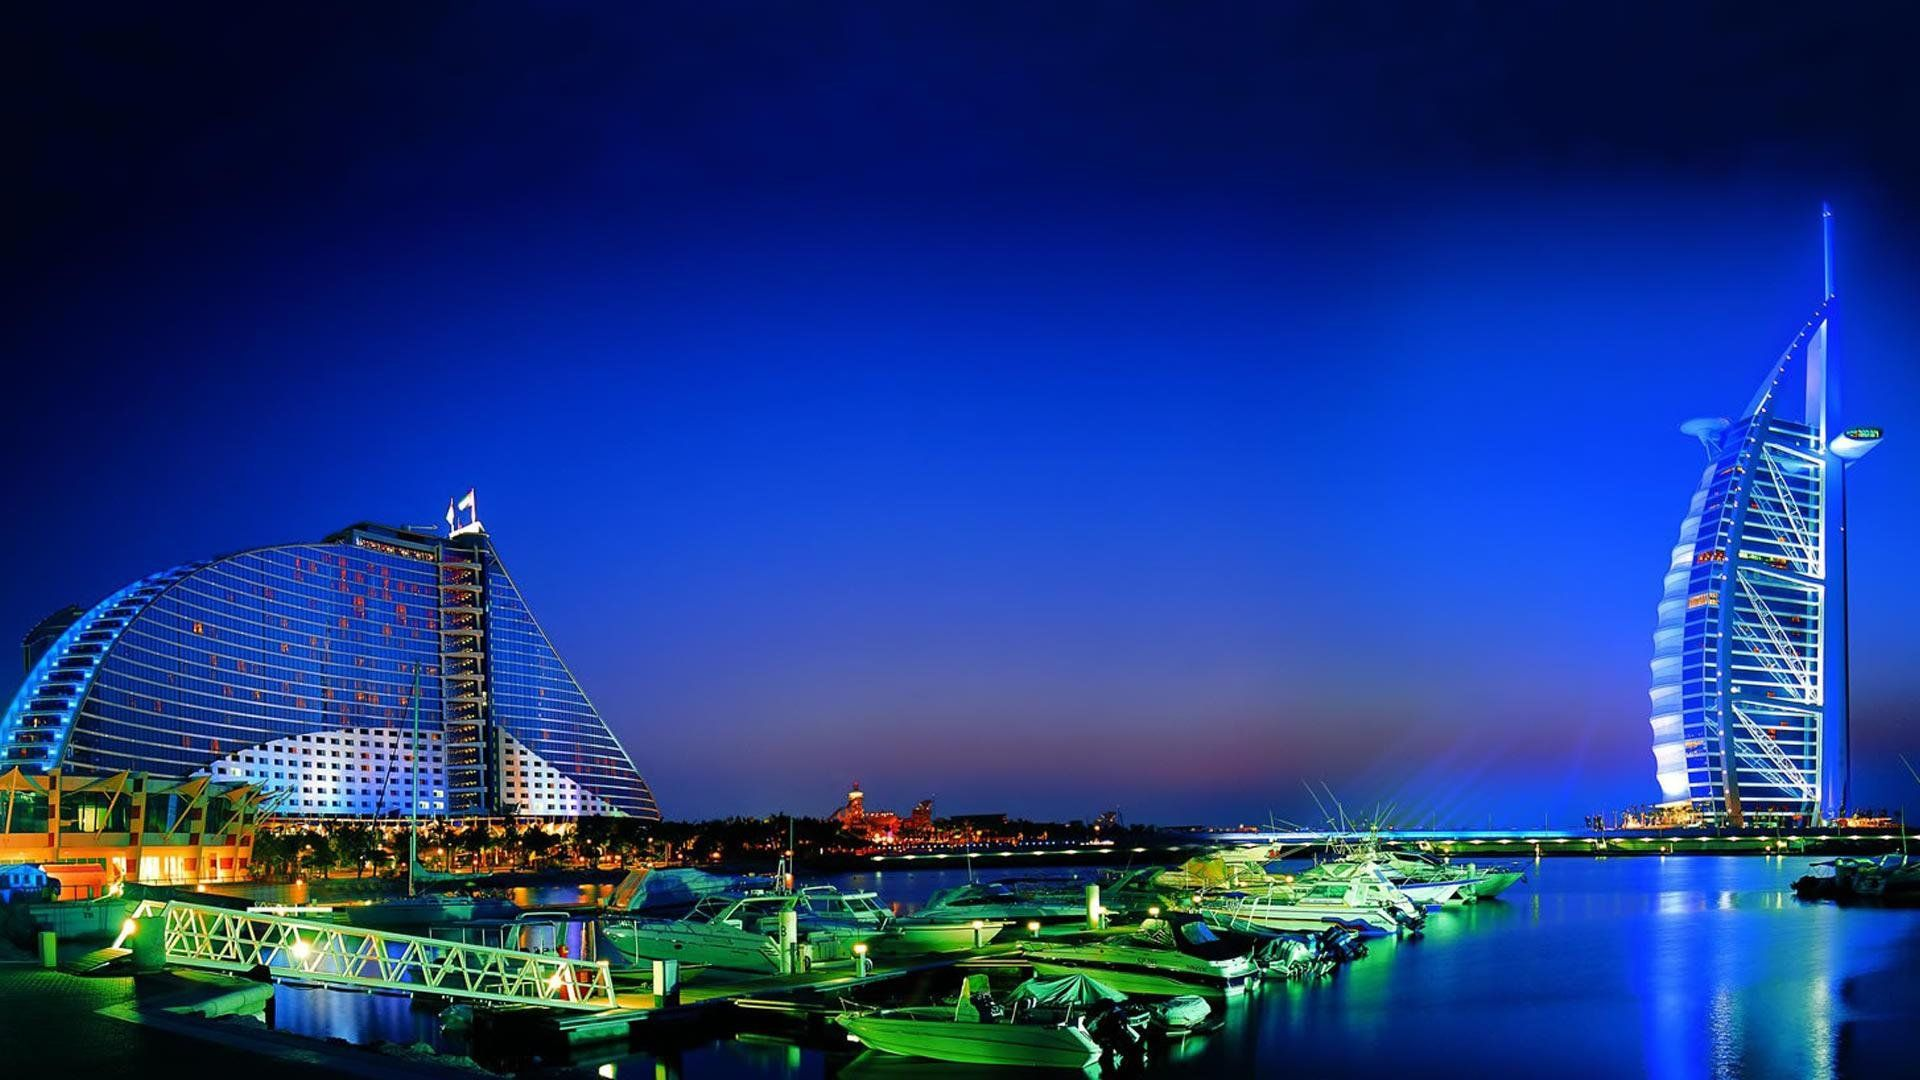 UAE Beautiful Places In The World HD 1920 X 1080